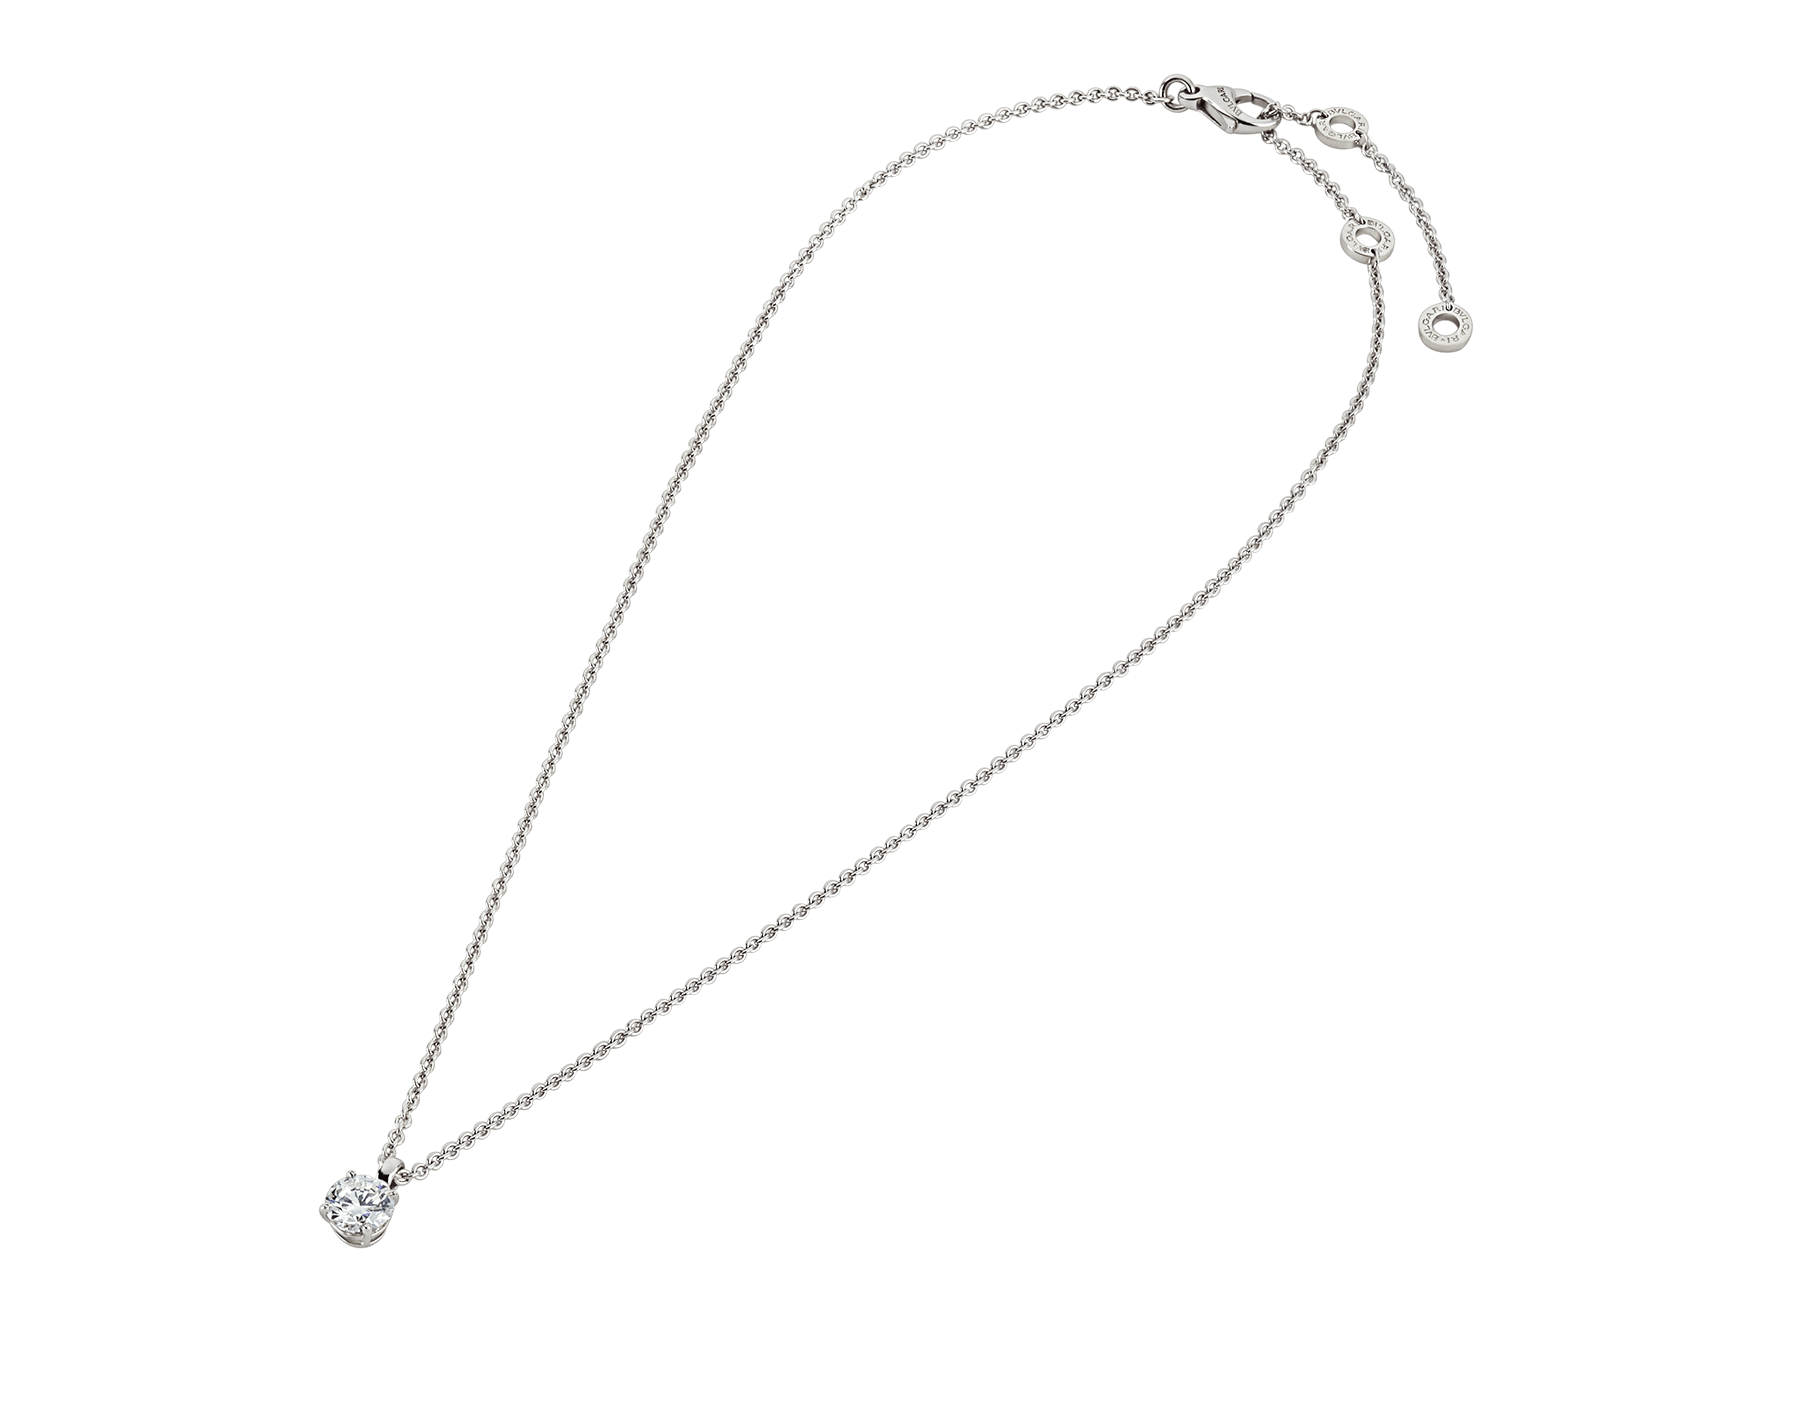 Griffe 18 kt white gold pendant with round brilliant cut diamond and 18 kt white gold chain 338201 image 2